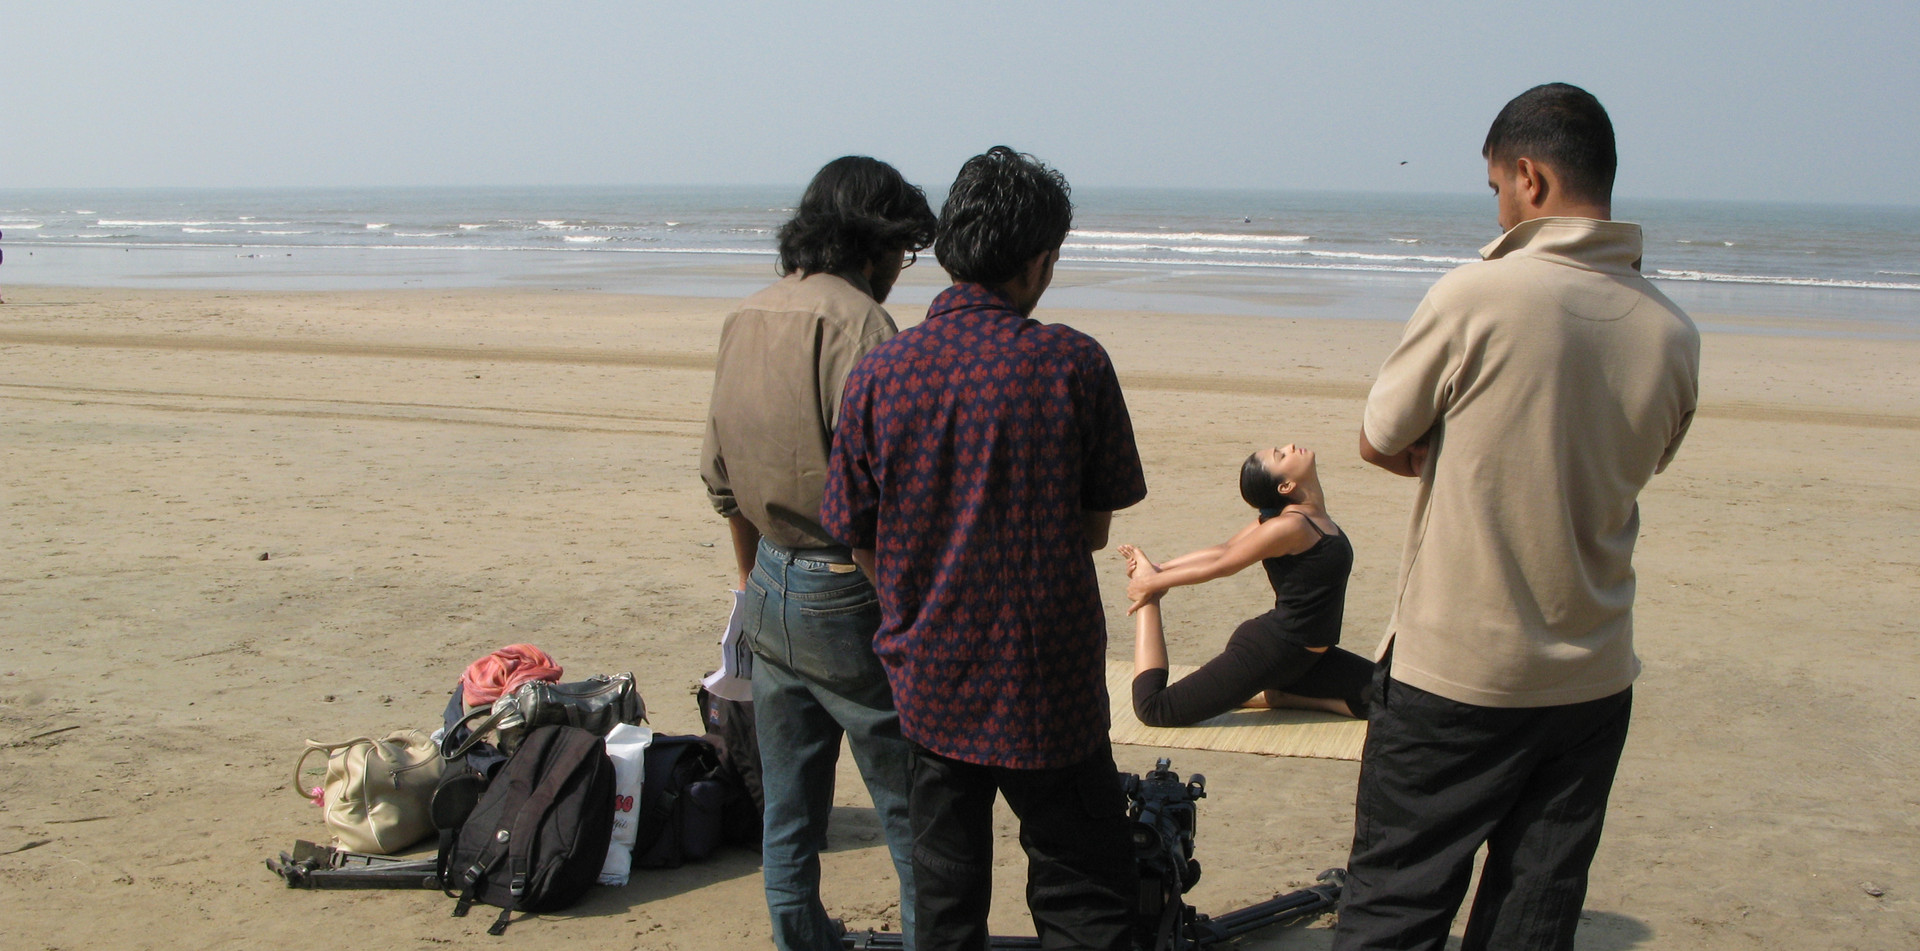 Casting session for a film on yoga and dance routine at a beach in Mumbai